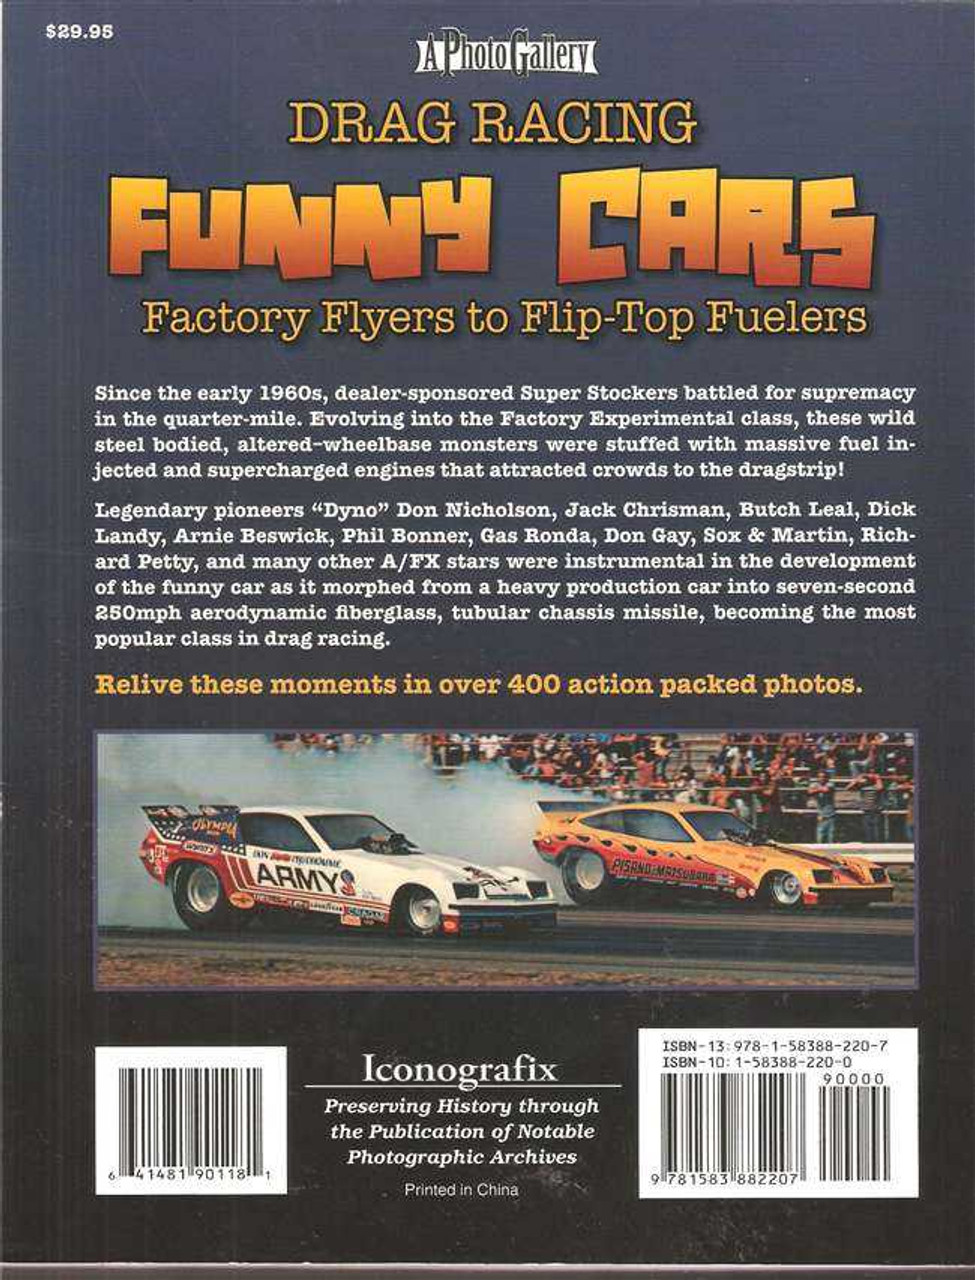 Drag Racing Funny Cars - Factory Flyers to Flip-Top Fuelers